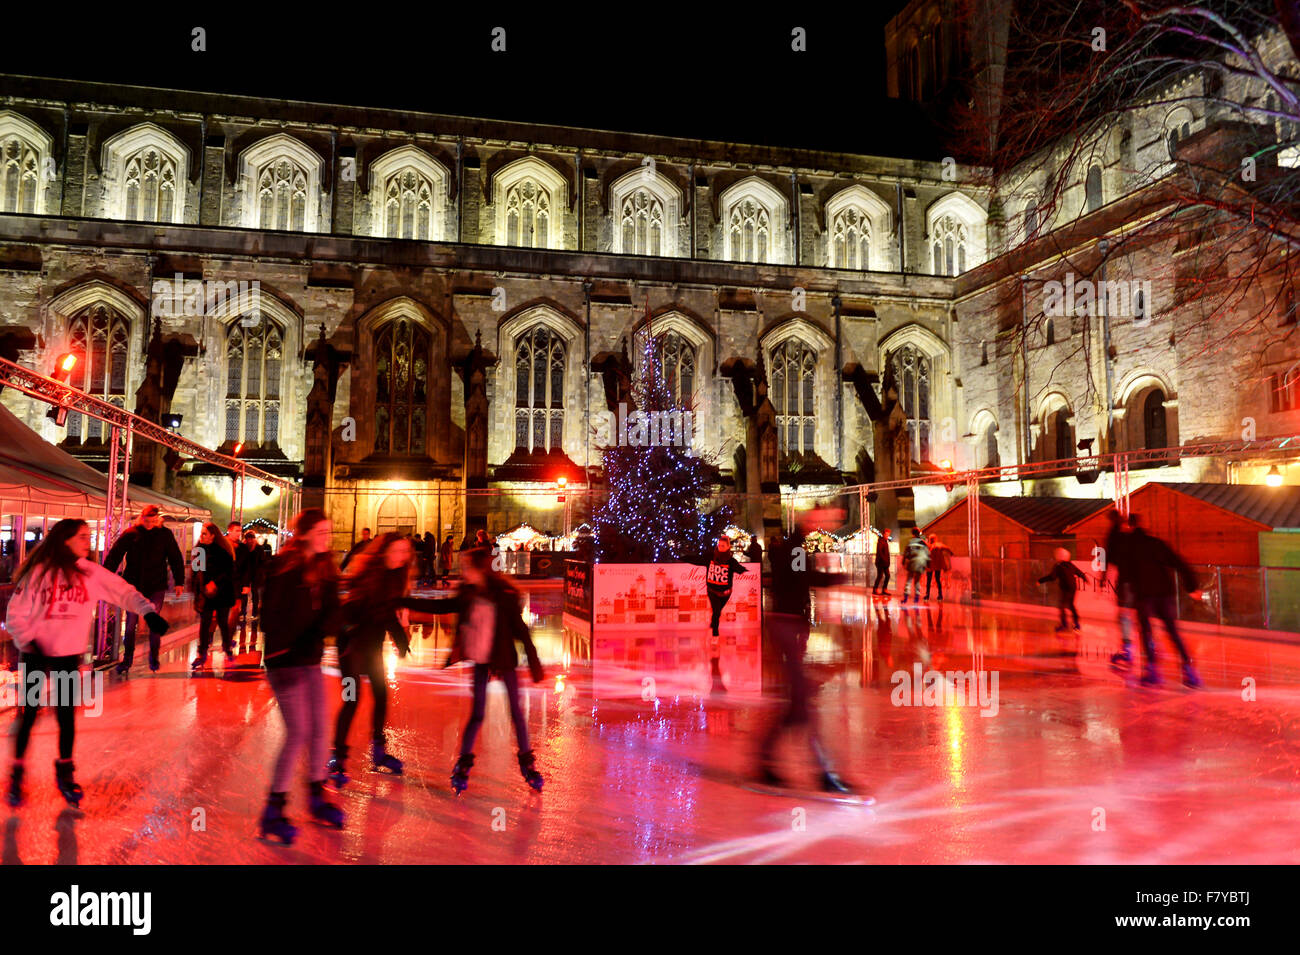 skaters-on-the-ice-skating-rink-in-the-g